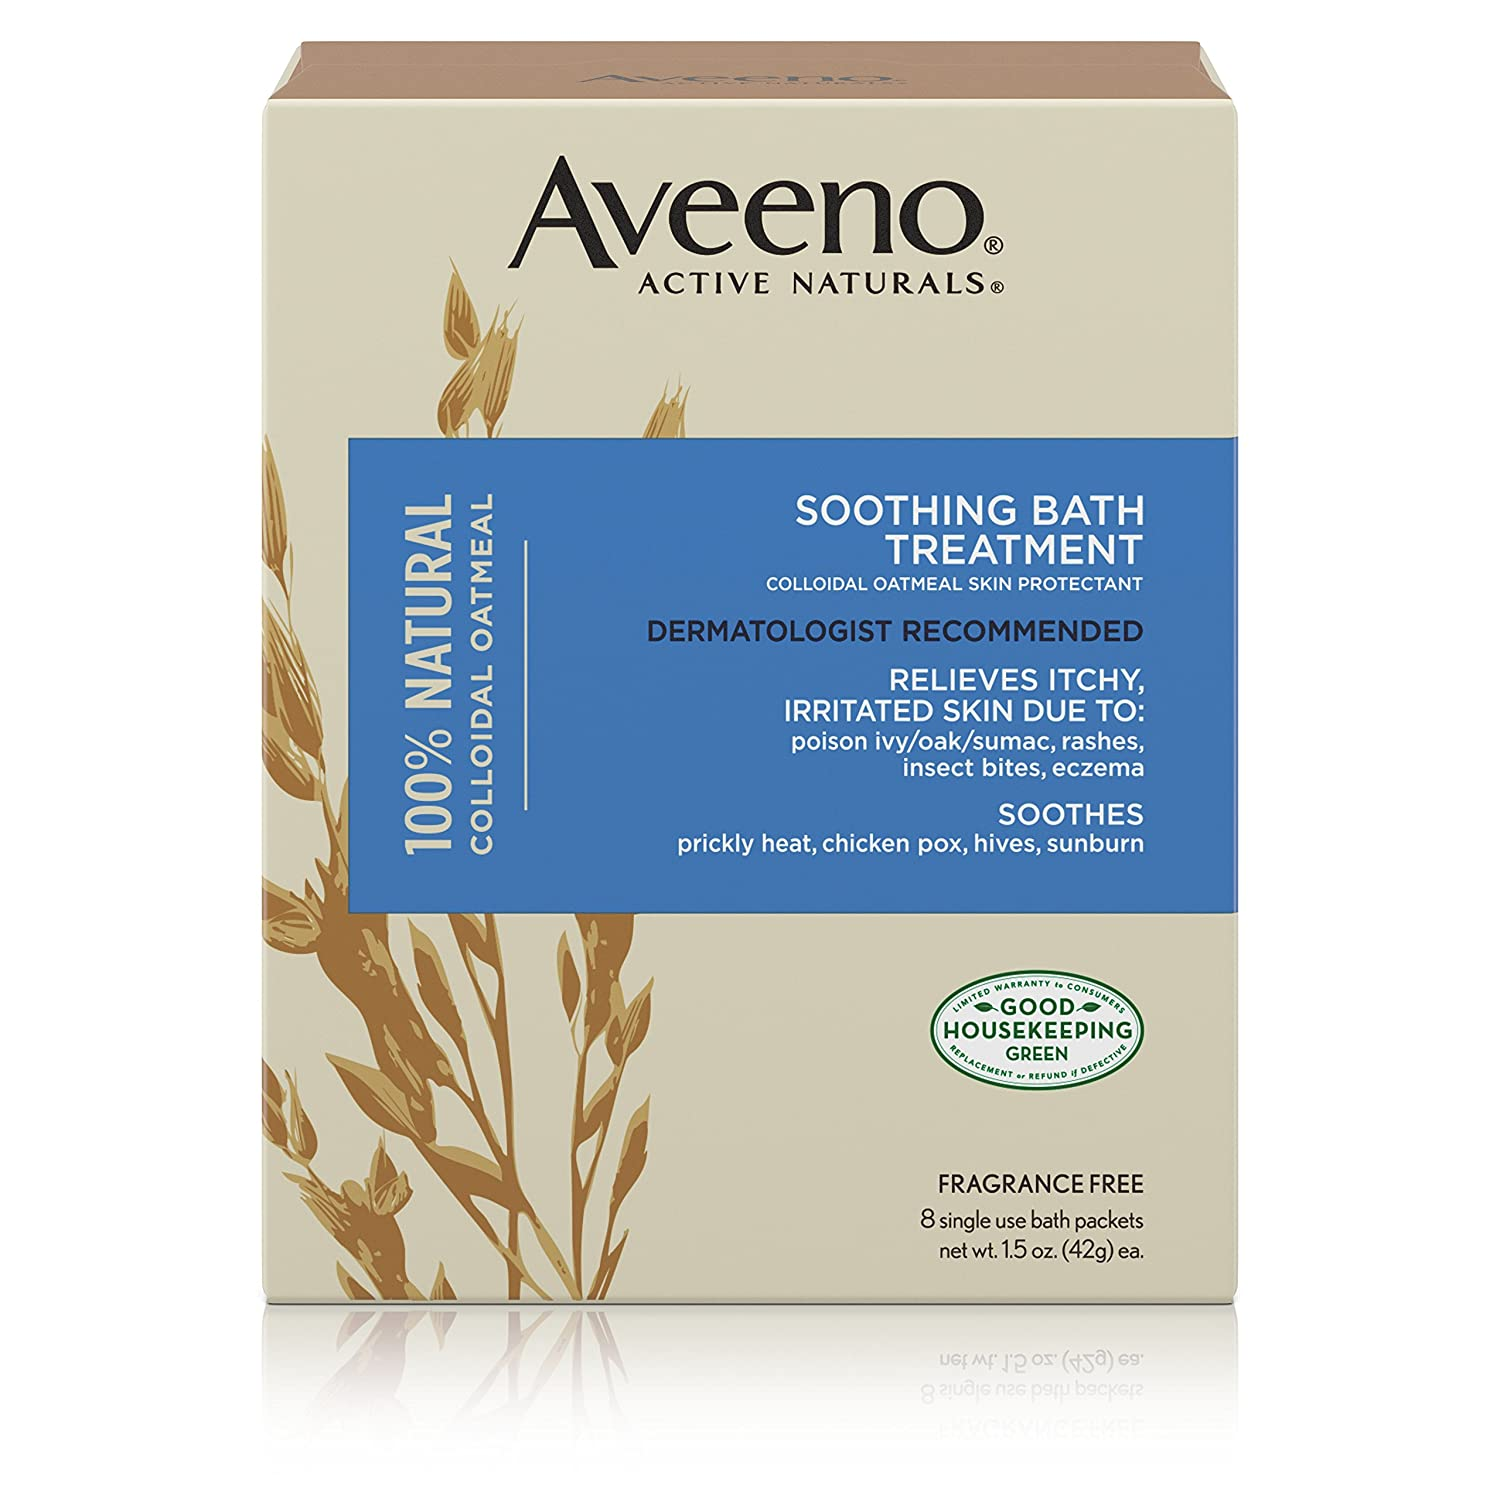 Aveeno Soothing Bath Treatment For Itchy, Irritated Skin, 8 Count J&J026393